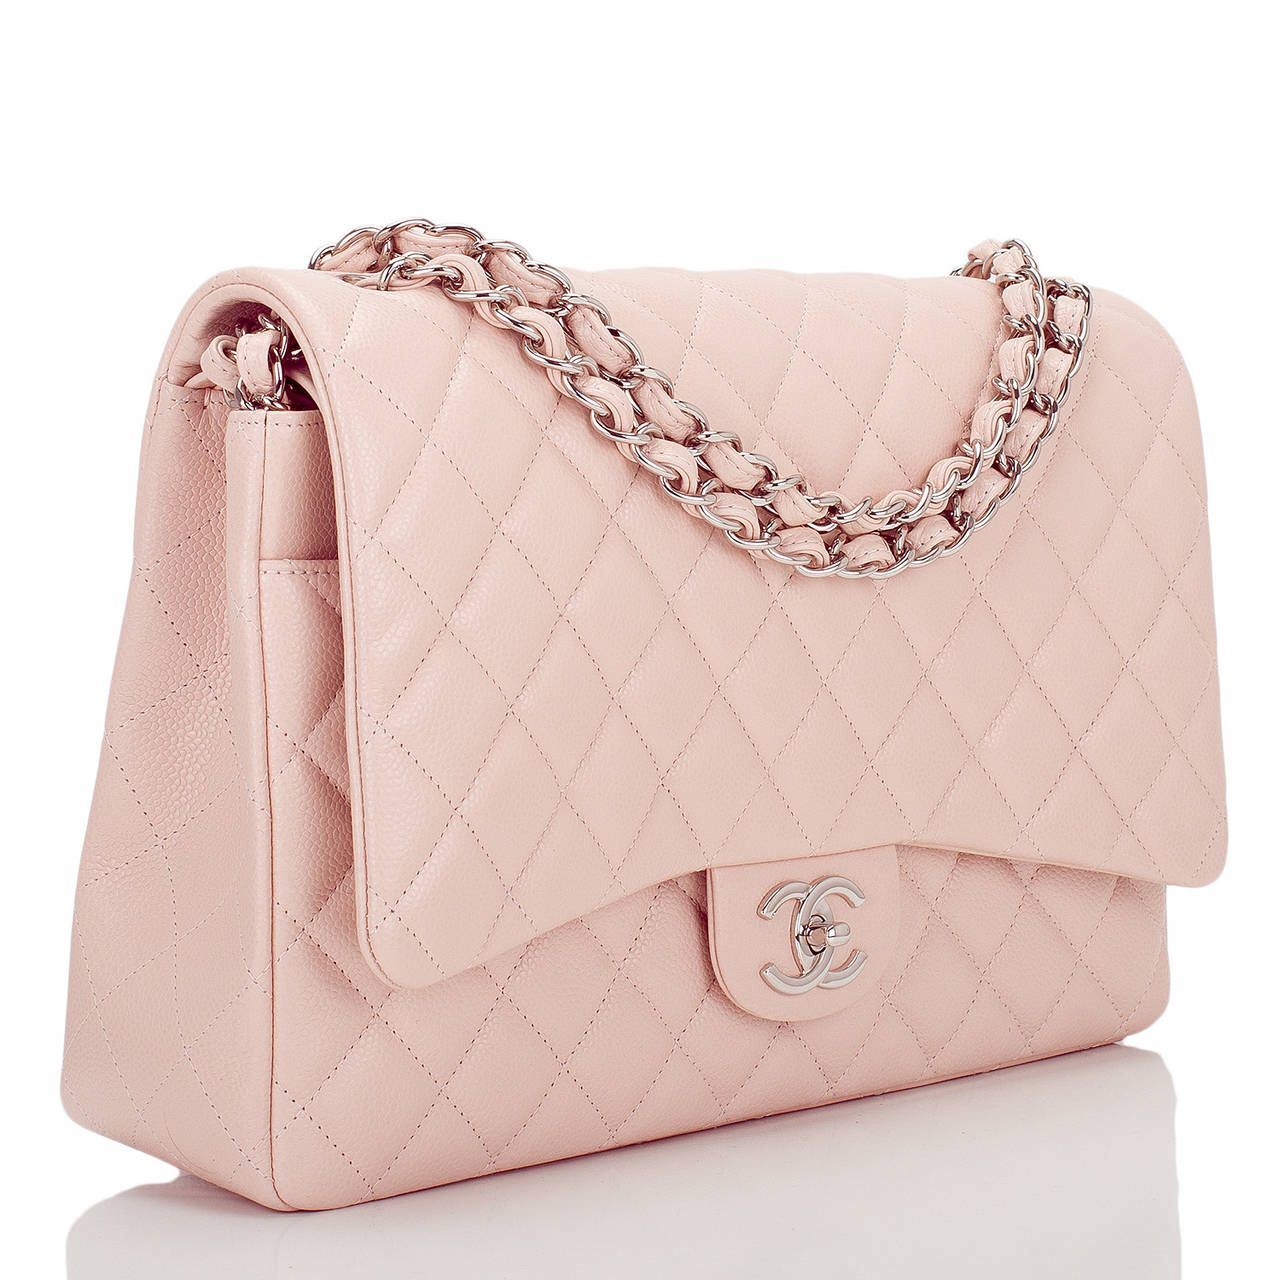 7ad8e130e0c6 View this item and discover similar structured shoulder bags for sale at -  This limited edition Chanel Maxi Classic double flap bag of light pink  quilted ...